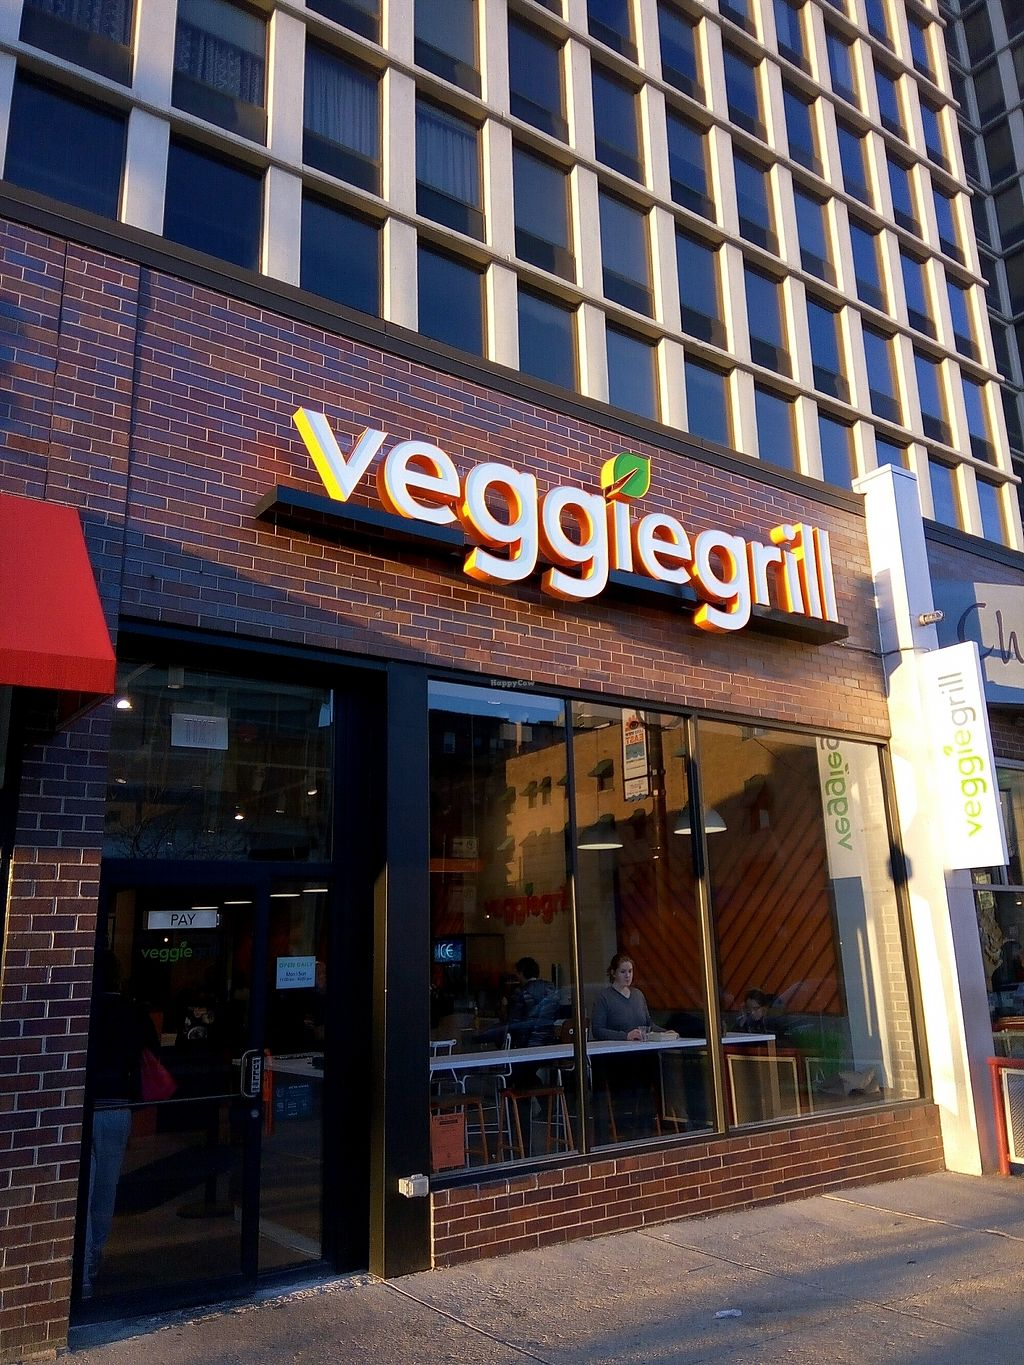 """Photo of Veggie Grill  by <a href=""""/members/profile/mster9ball1"""">mster9ball1</a> <br/>great location <br/> March 11, 2018  - <a href='/contact/abuse/image/112183/369504'>Report</a>"""